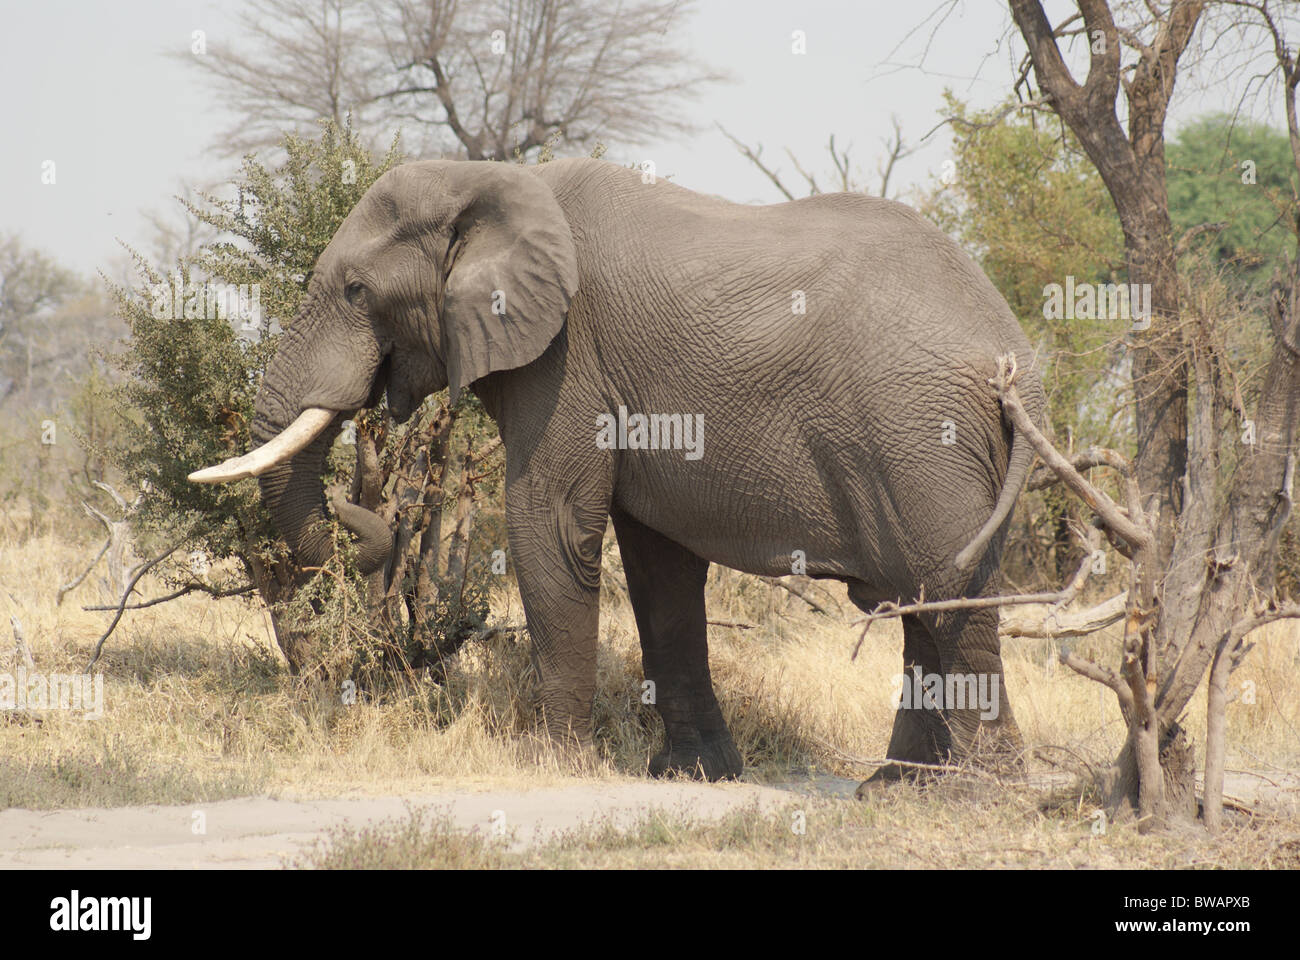 African Elephant cow standing between trees in Botswana - Stock Image